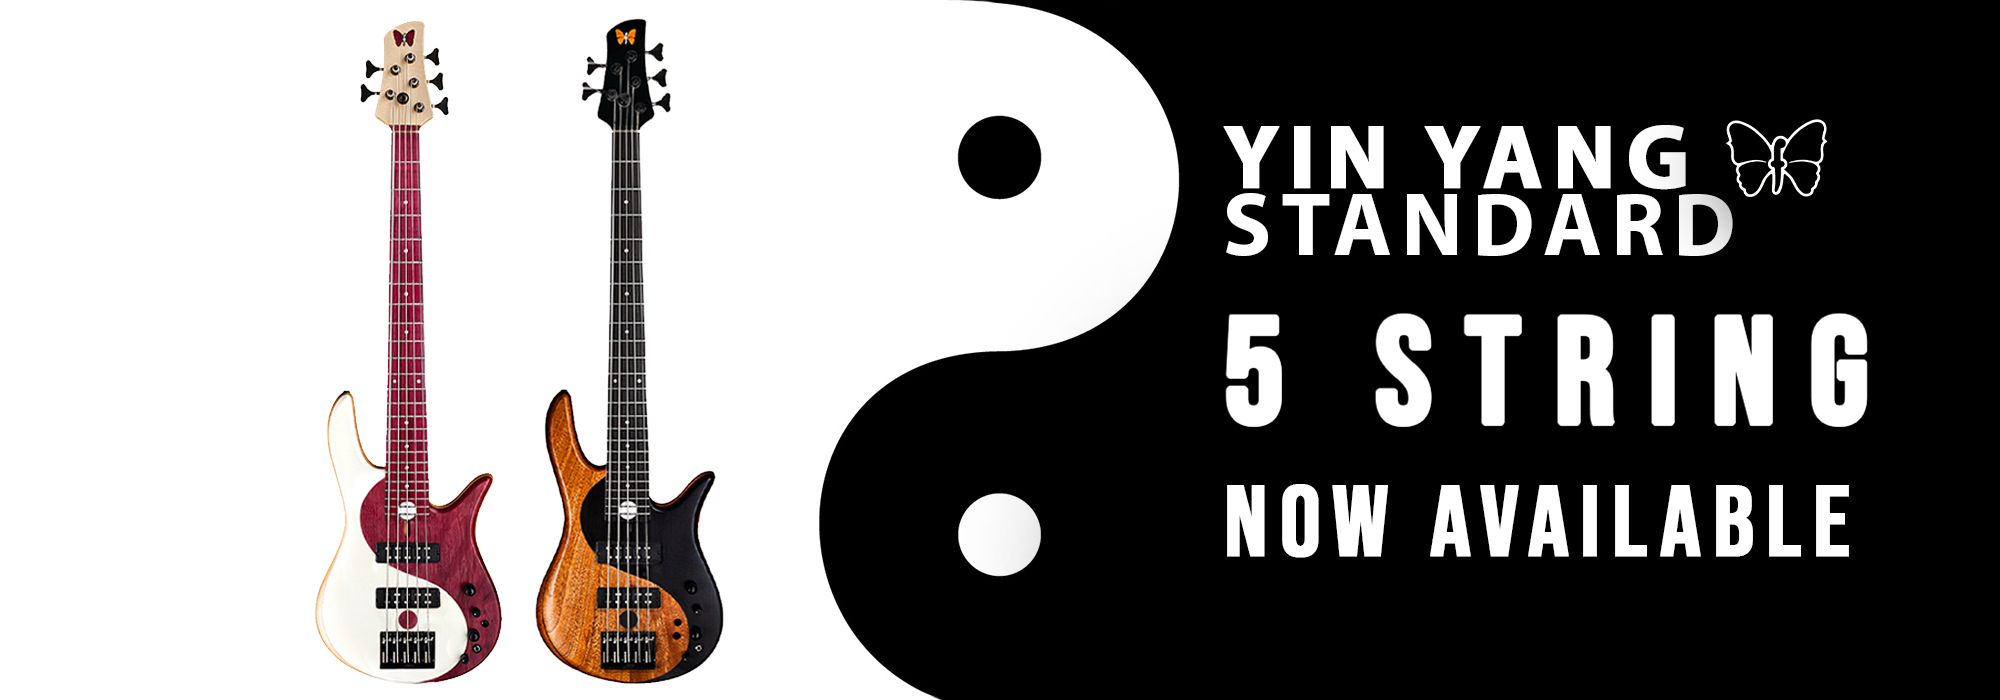 Yin Yang Standard 5-String Bass Now Available